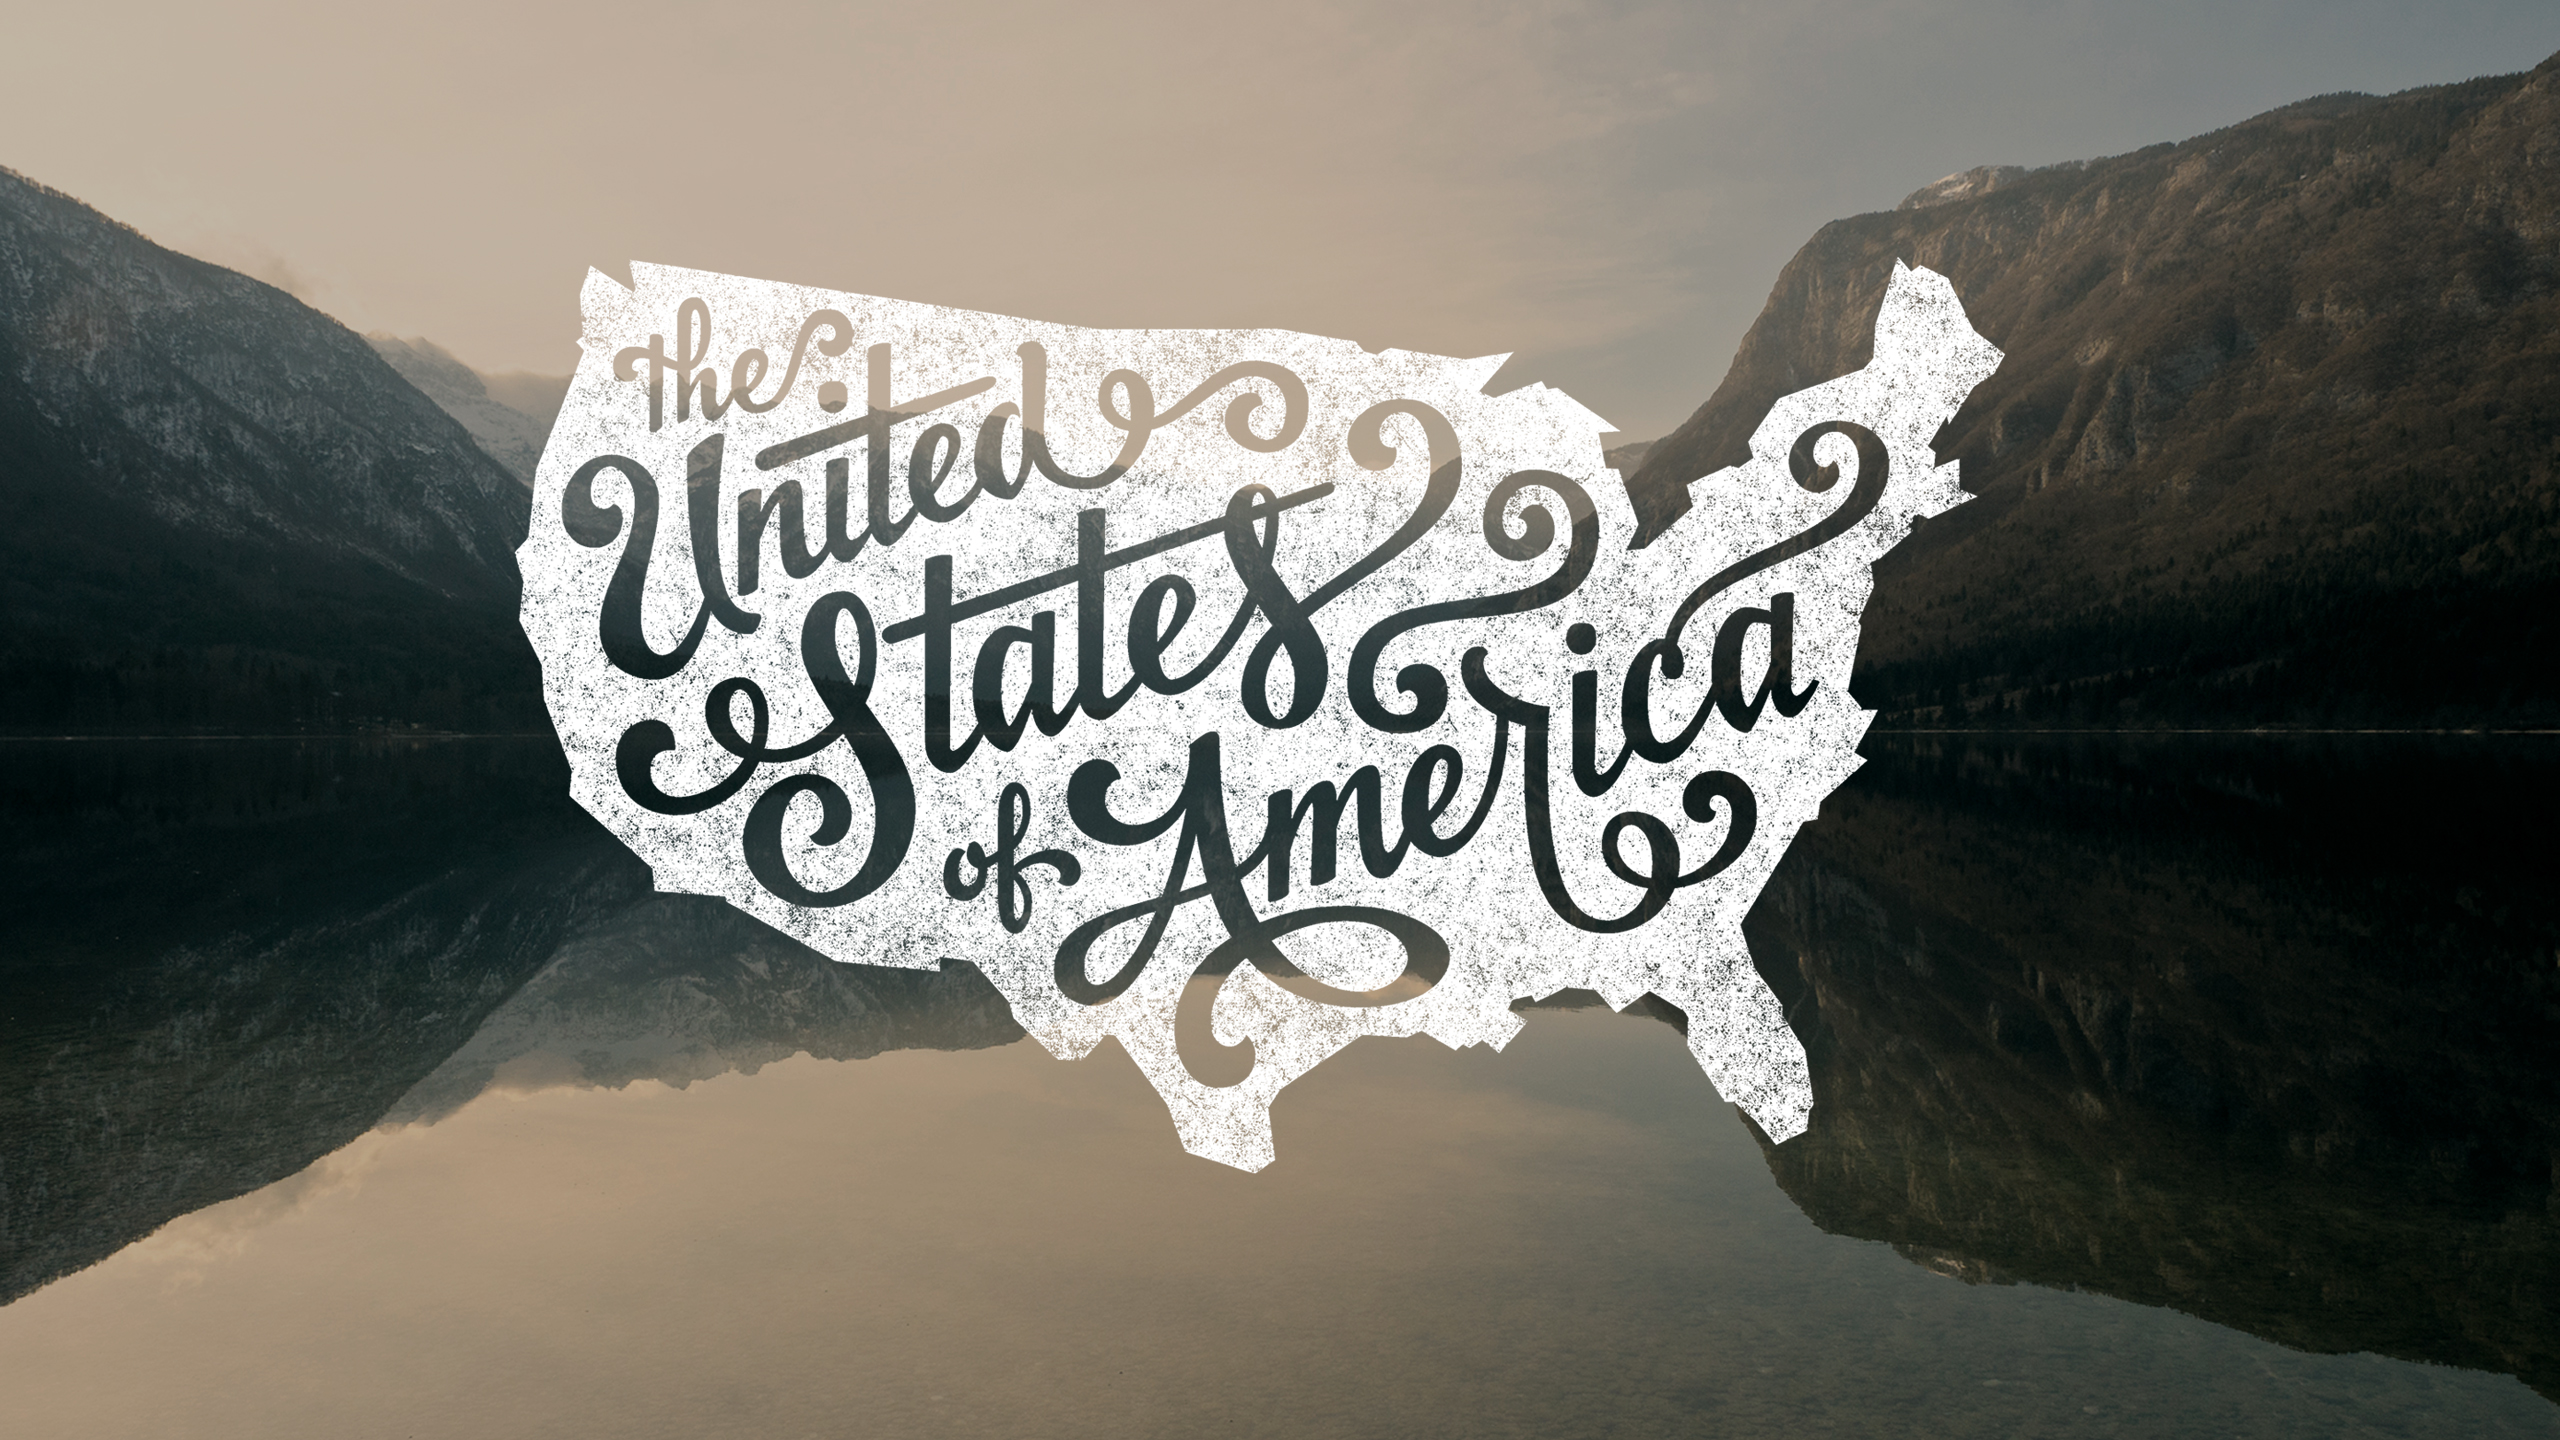 Marvelous The United States Of America Wallpaper